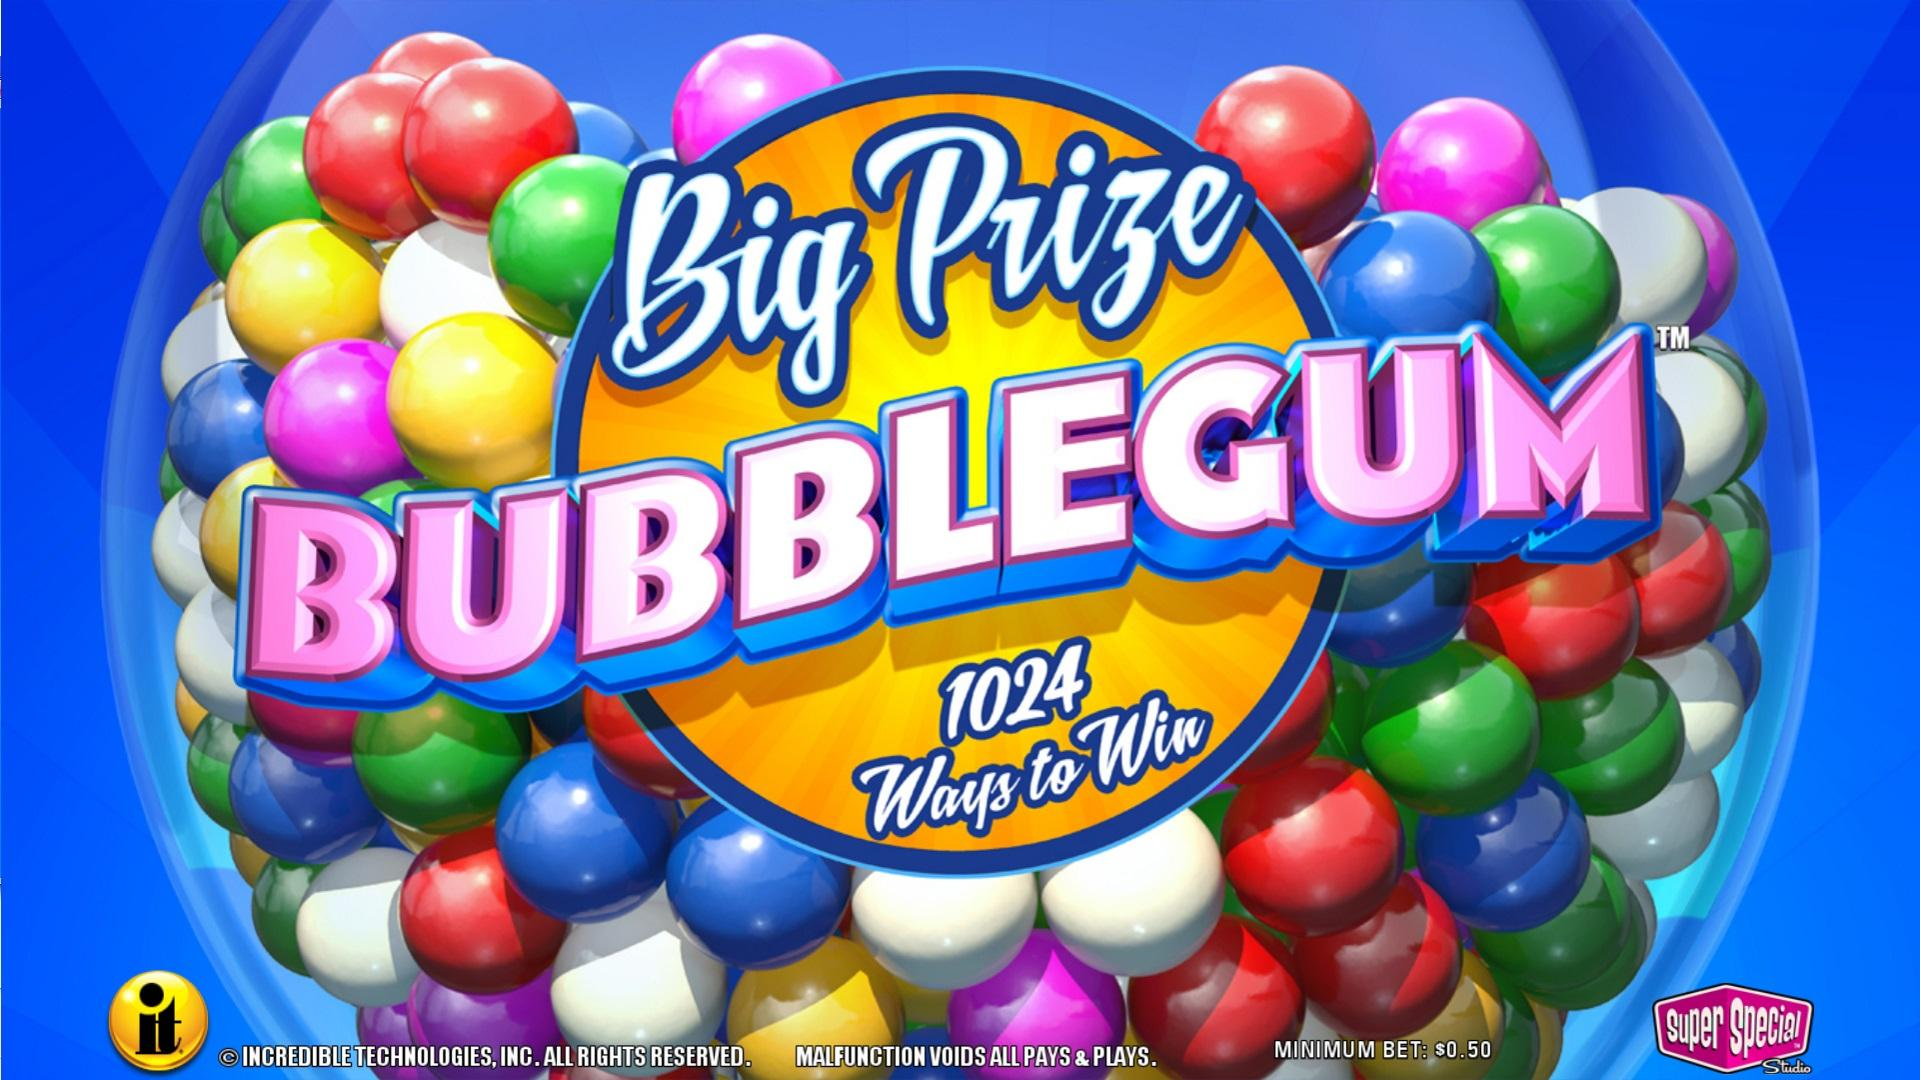 Bubblegum Top Box